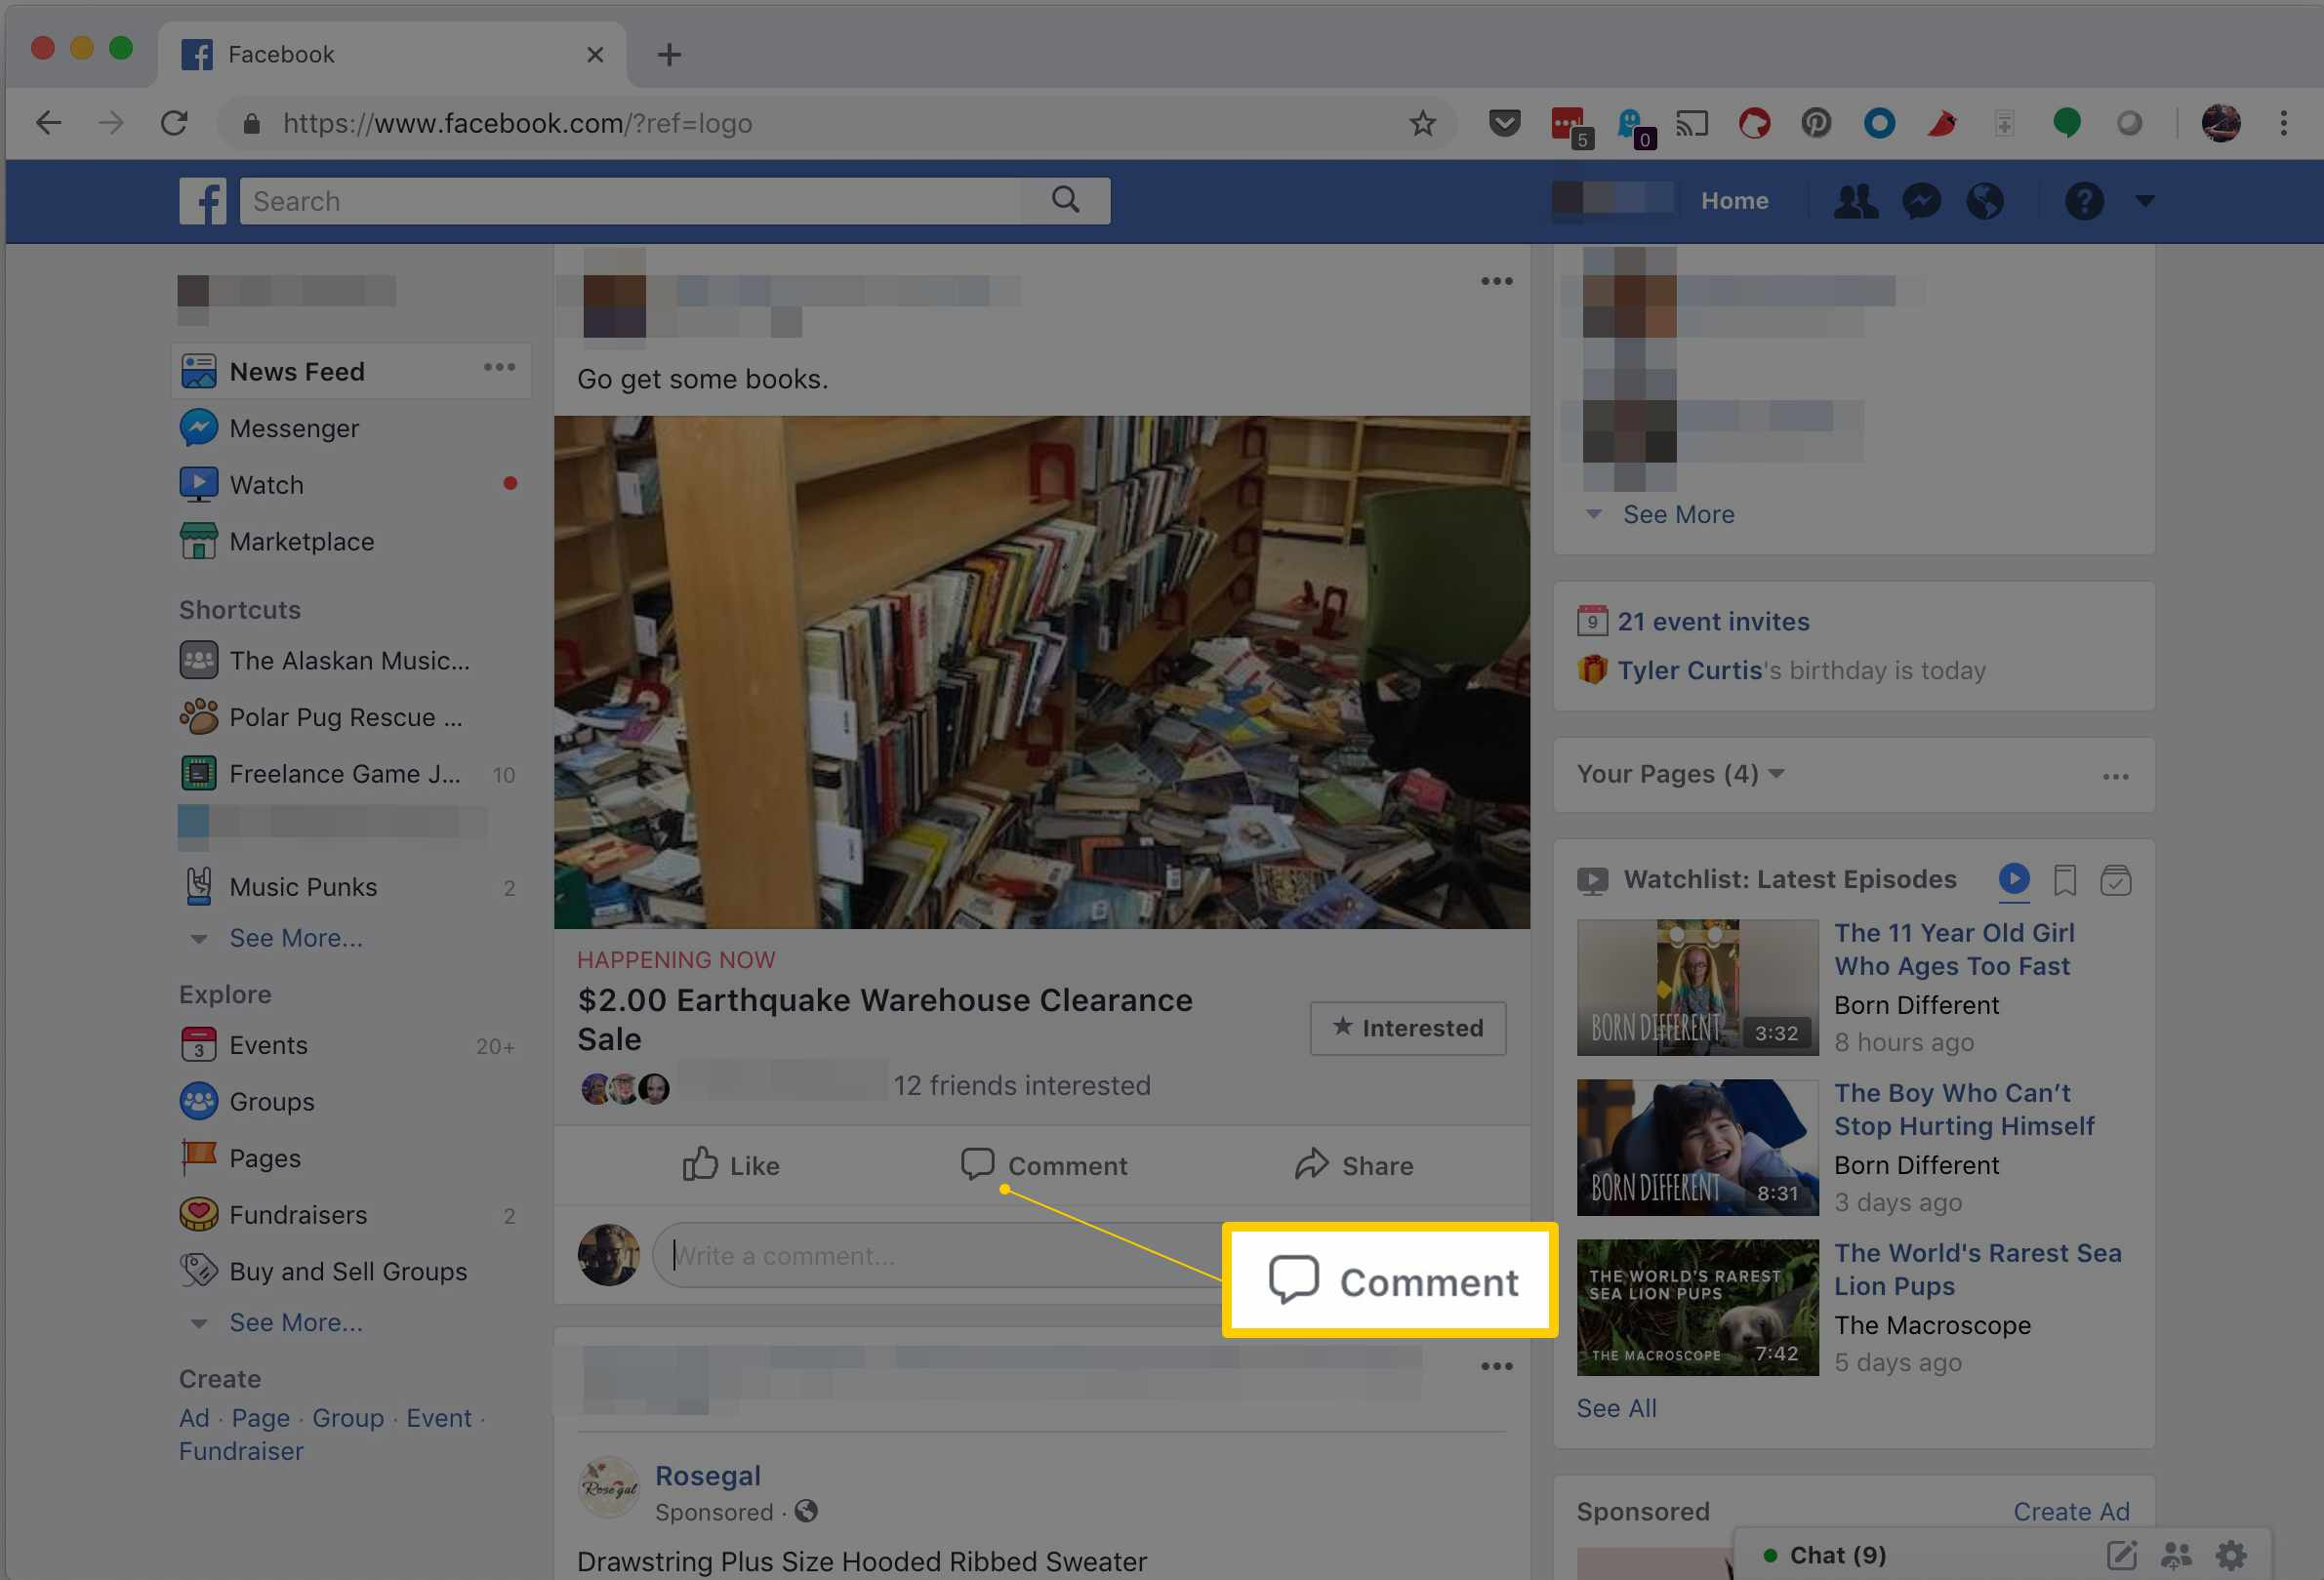 How to Add a Photo to a Facebook Comment